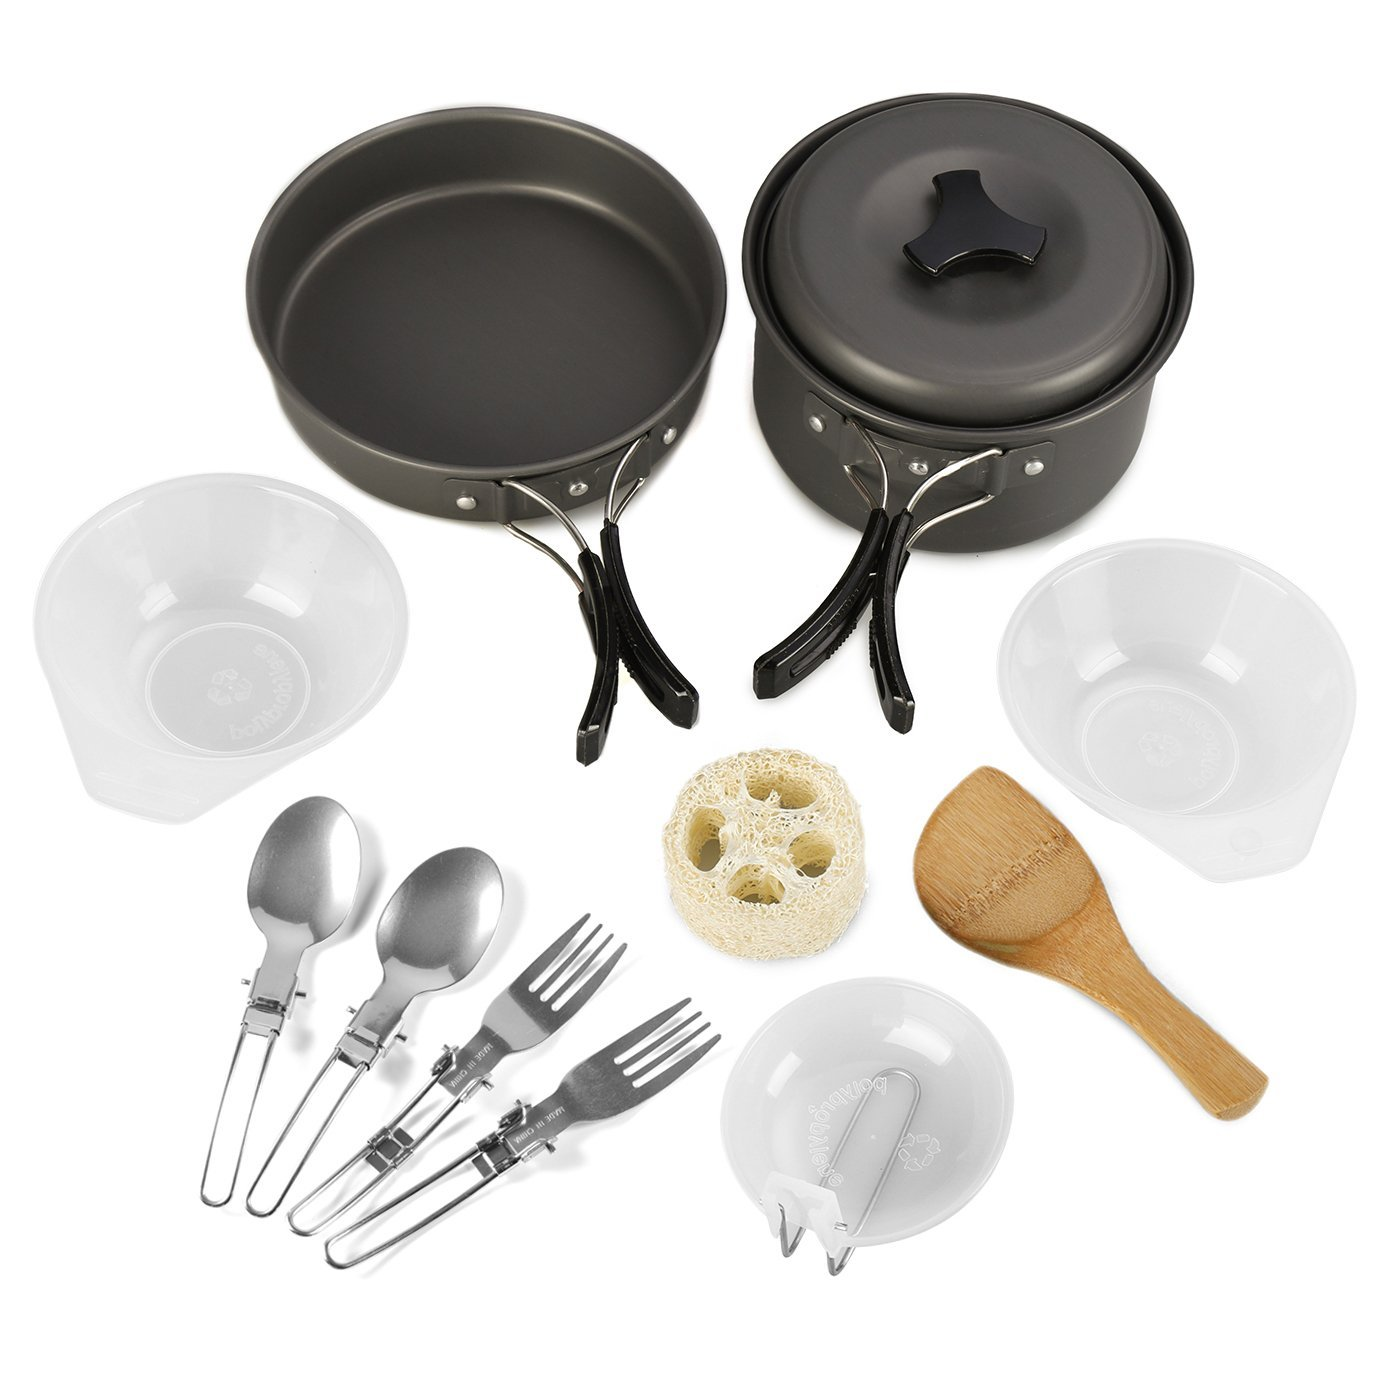 -  PORTABLE CAMPING COOK SET